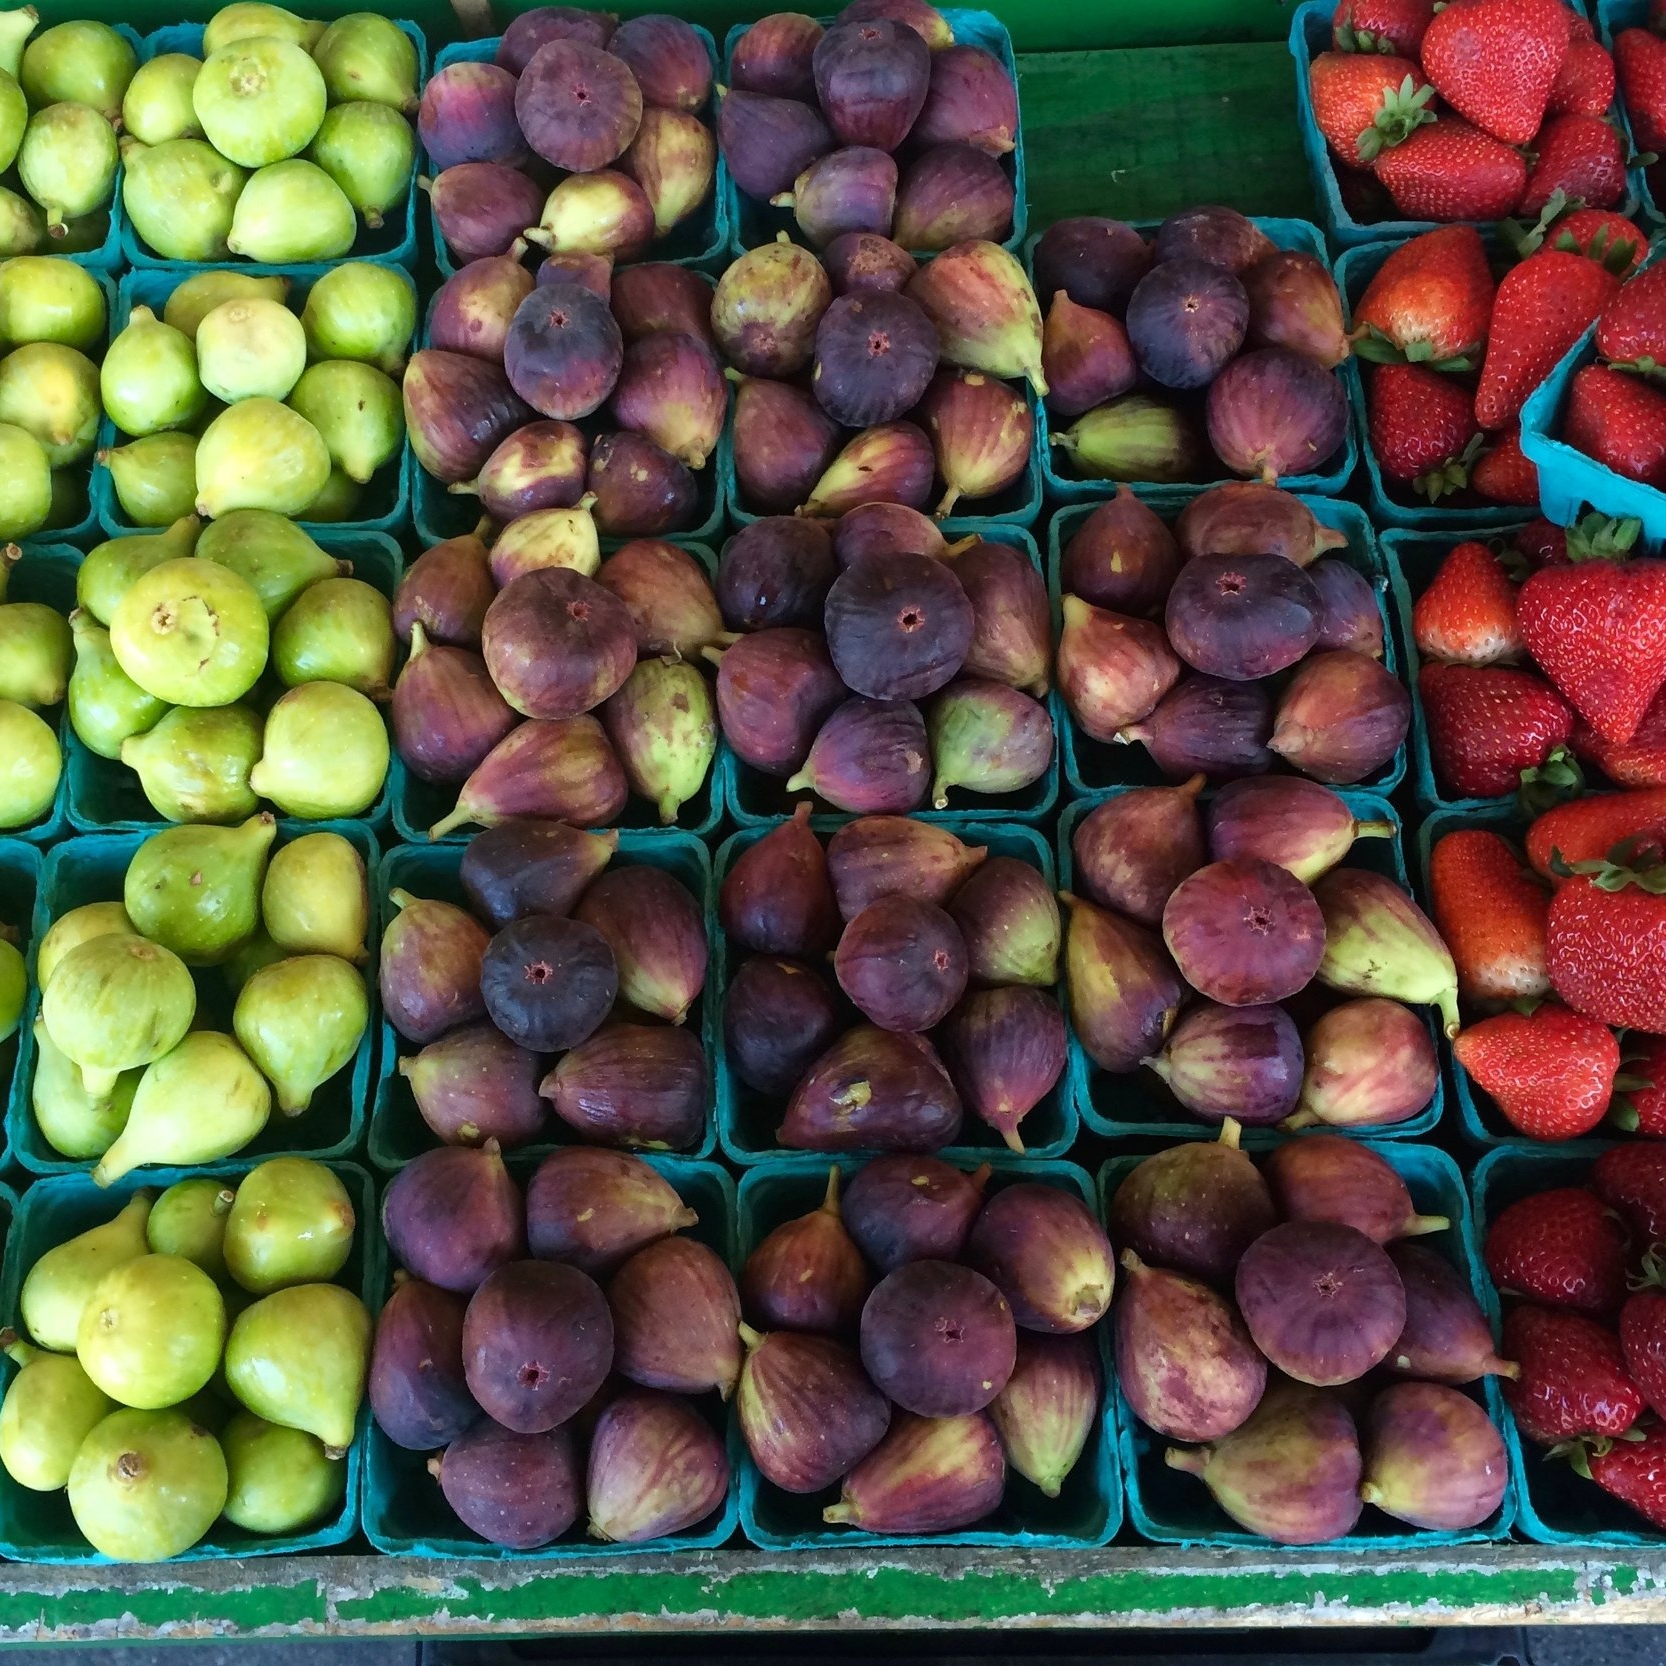 healthy living is a priority - • Regular deliveries from the Farmstead CSA ensure that your food is delivered at its freshest, setting Wetrock Farm apart from other neighborhoods.• With sustainable farm practices, the Farmstead prioritizes delivering produce that is healthy and clean for both residents and the land.• With over 100 acres of pristine outdoor space to explore, nature is a part of everyday life. Imagine unpolluted air and clear night skies, walking trails and picnic areas, and beautiful backdrops outside of every window.